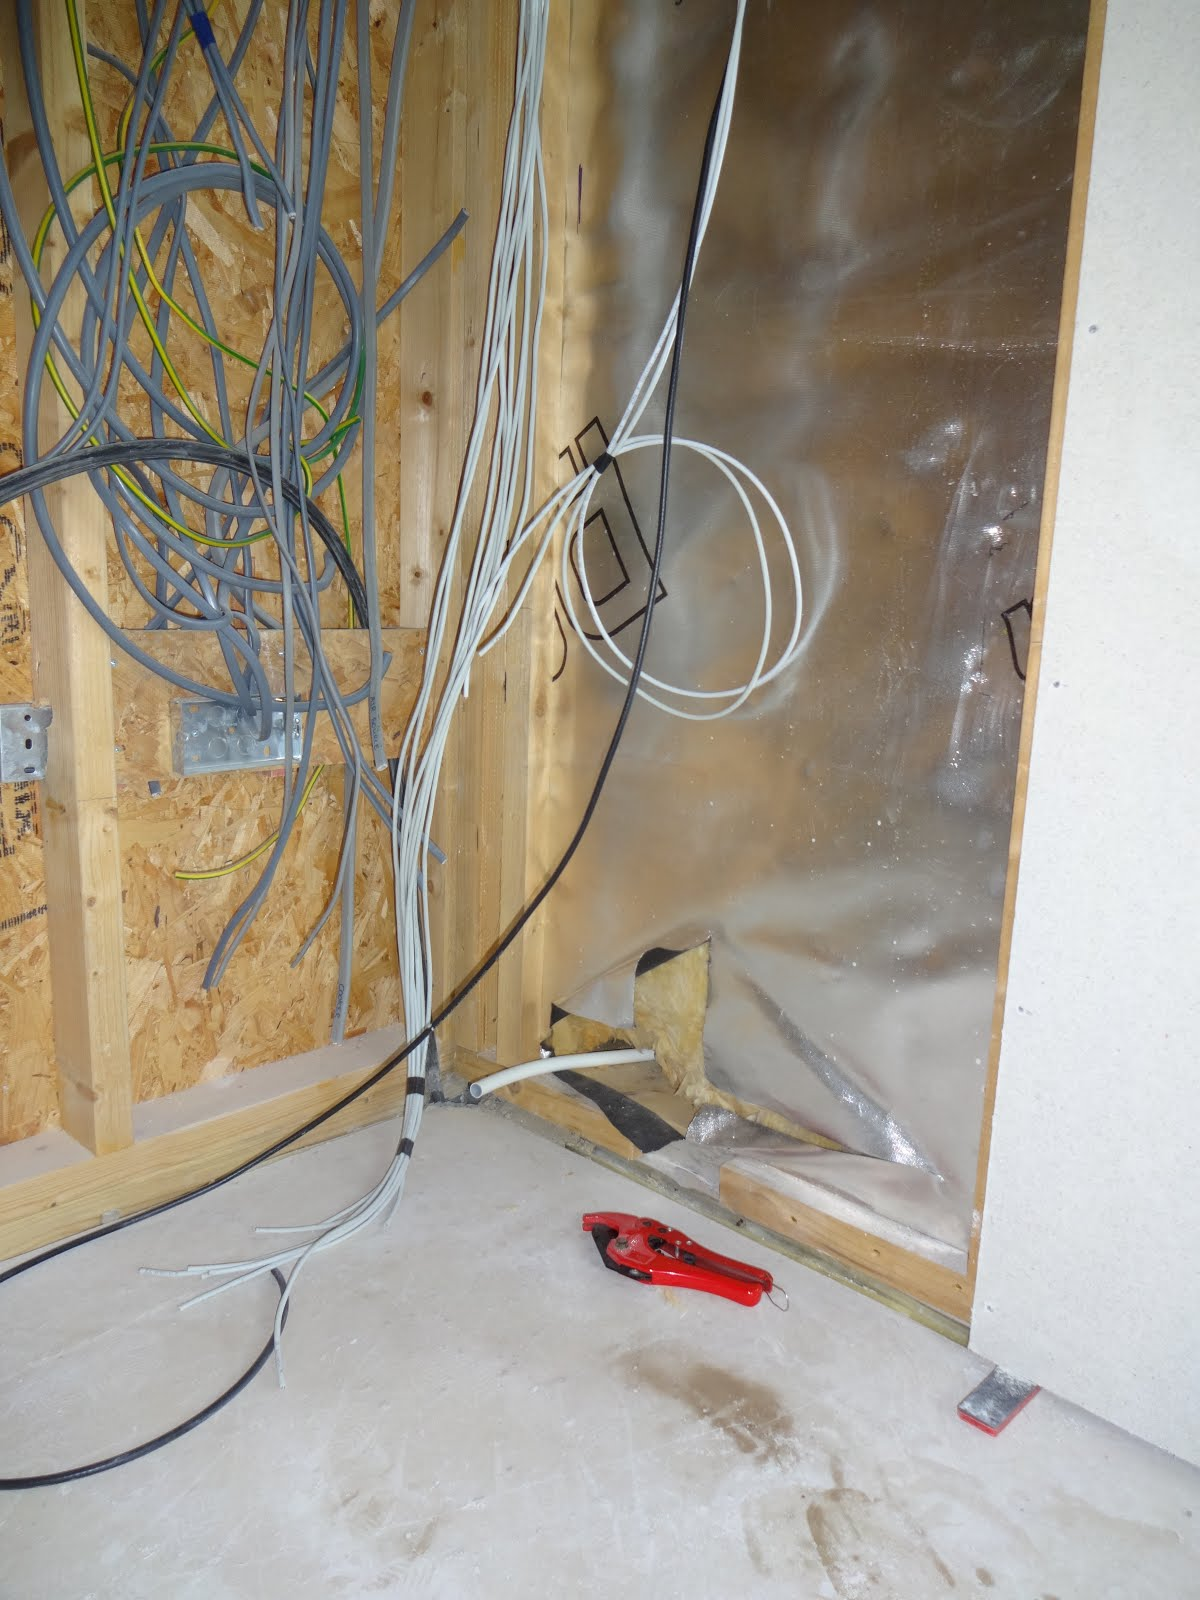 Vas Home Build Boarding Walls Ground Floor Electrical Wiring In Cinder Block The Conduit Should Allow Bt To Pass Their New Cables Through Wall Without Any Drilling And Also Ensures We End Up With Cable Entering Room